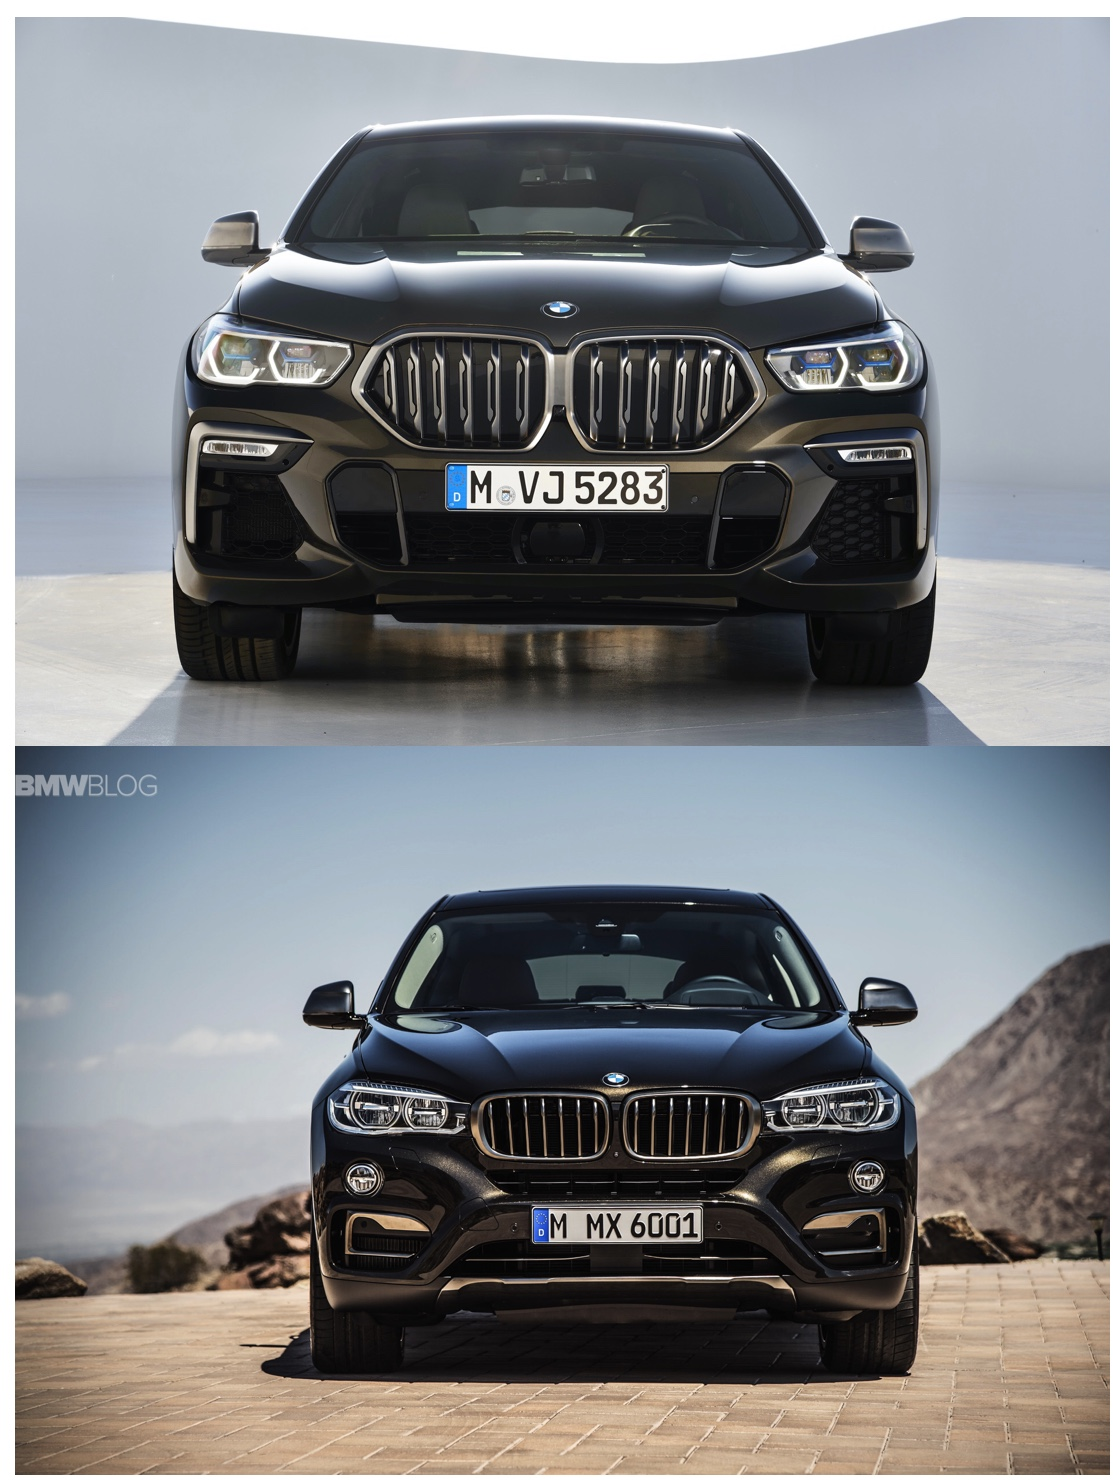 New BMW X6 vs Old BMW X6